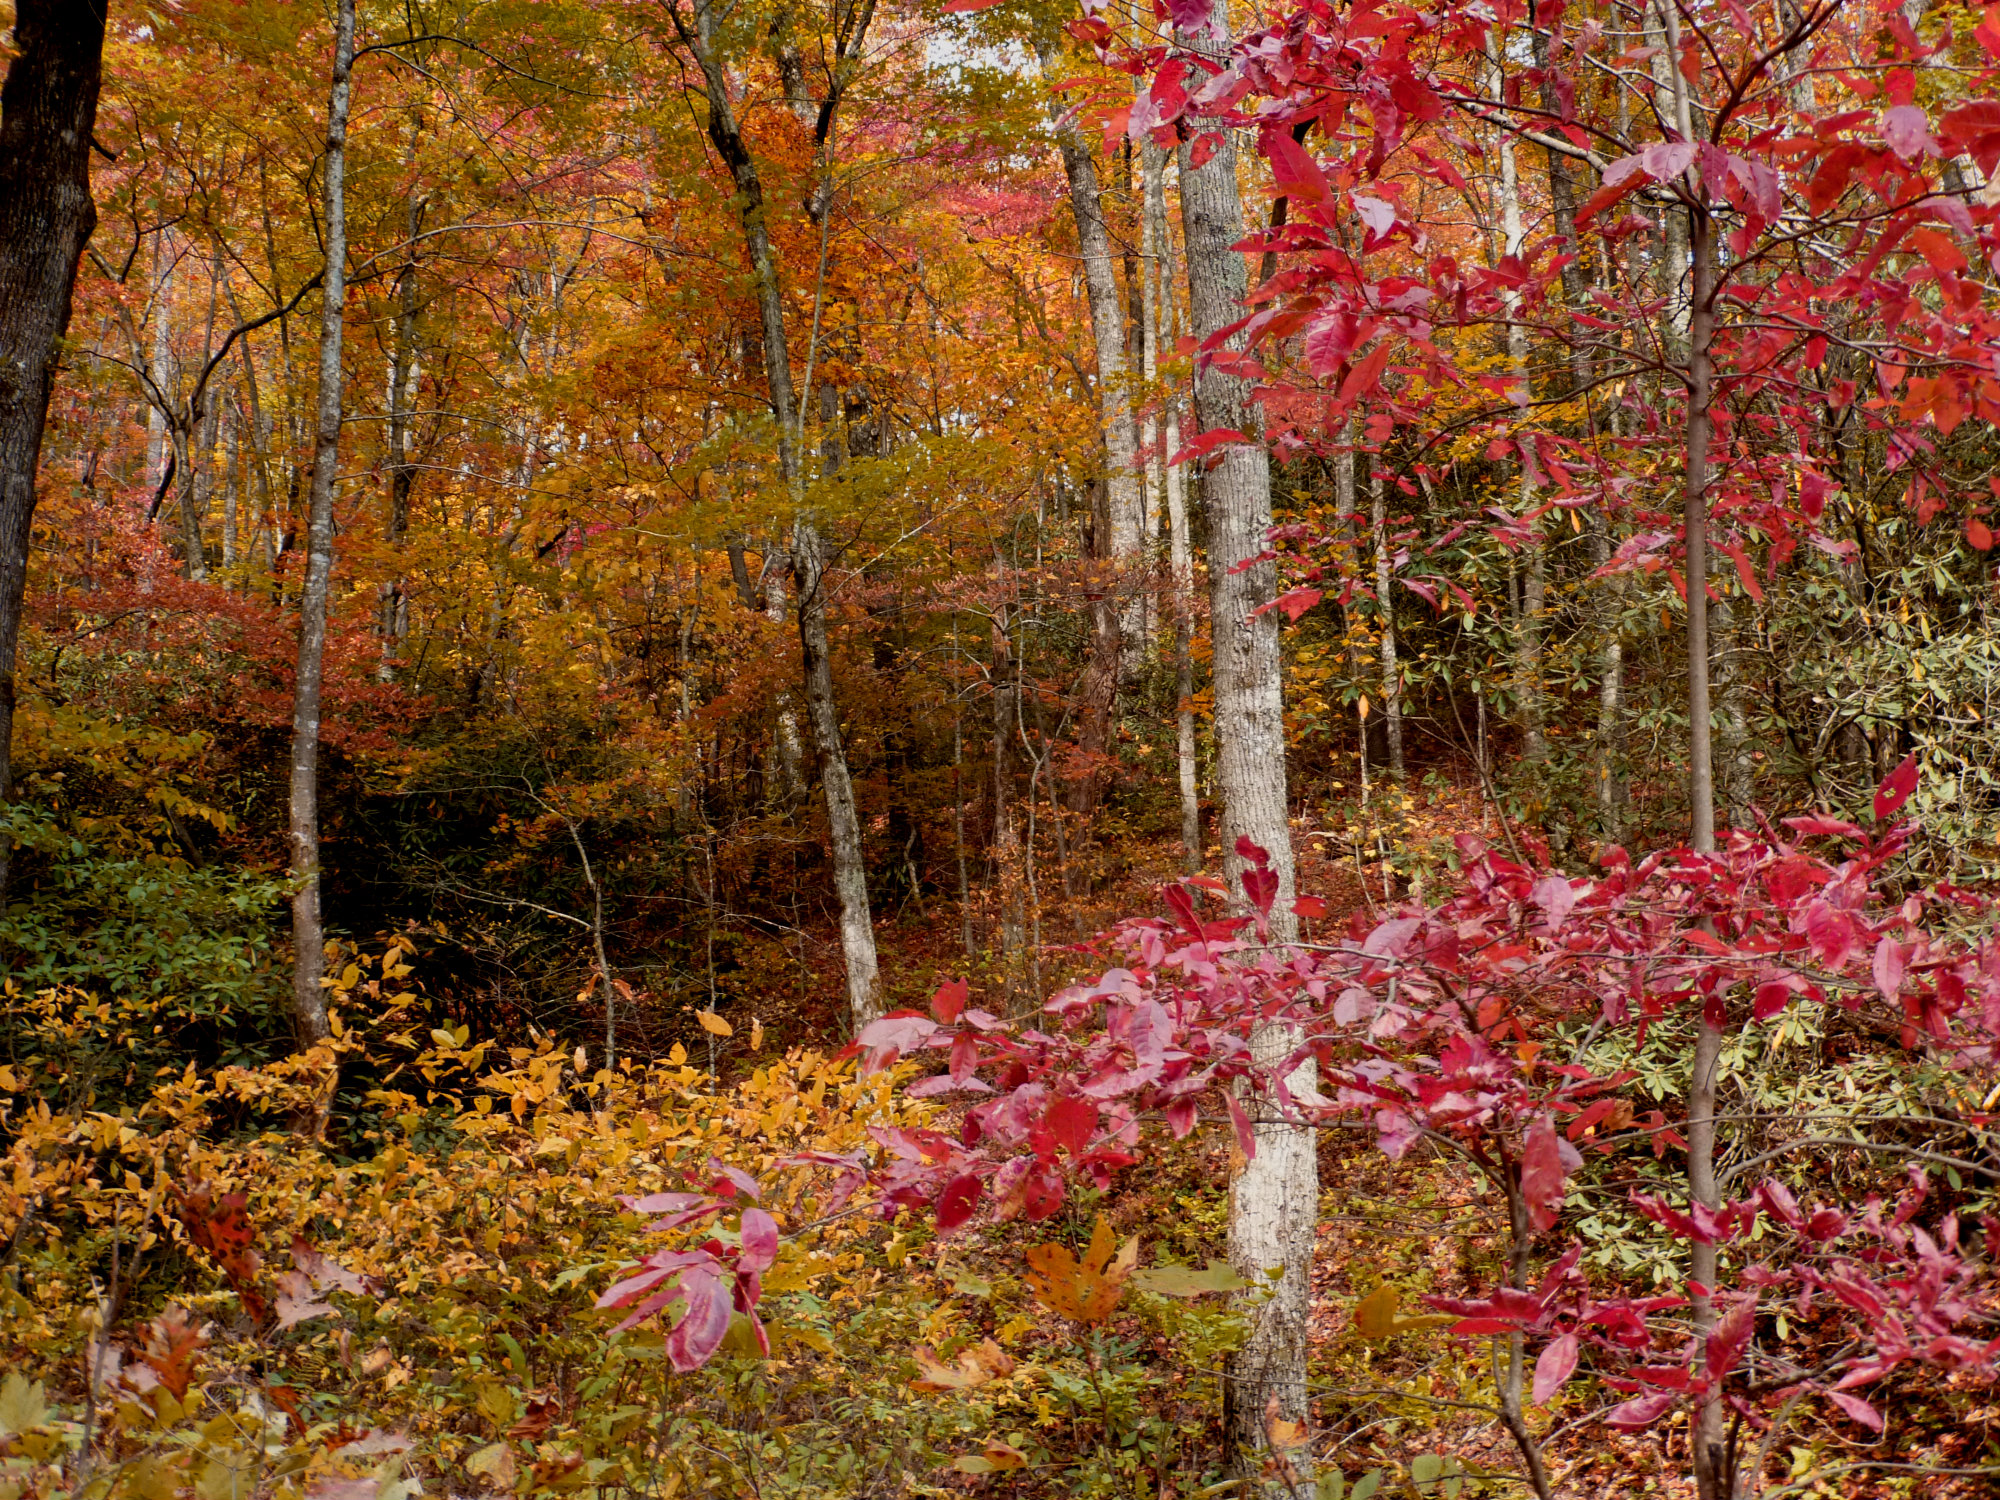 View of wooded landscape with several trees showing bold fall color